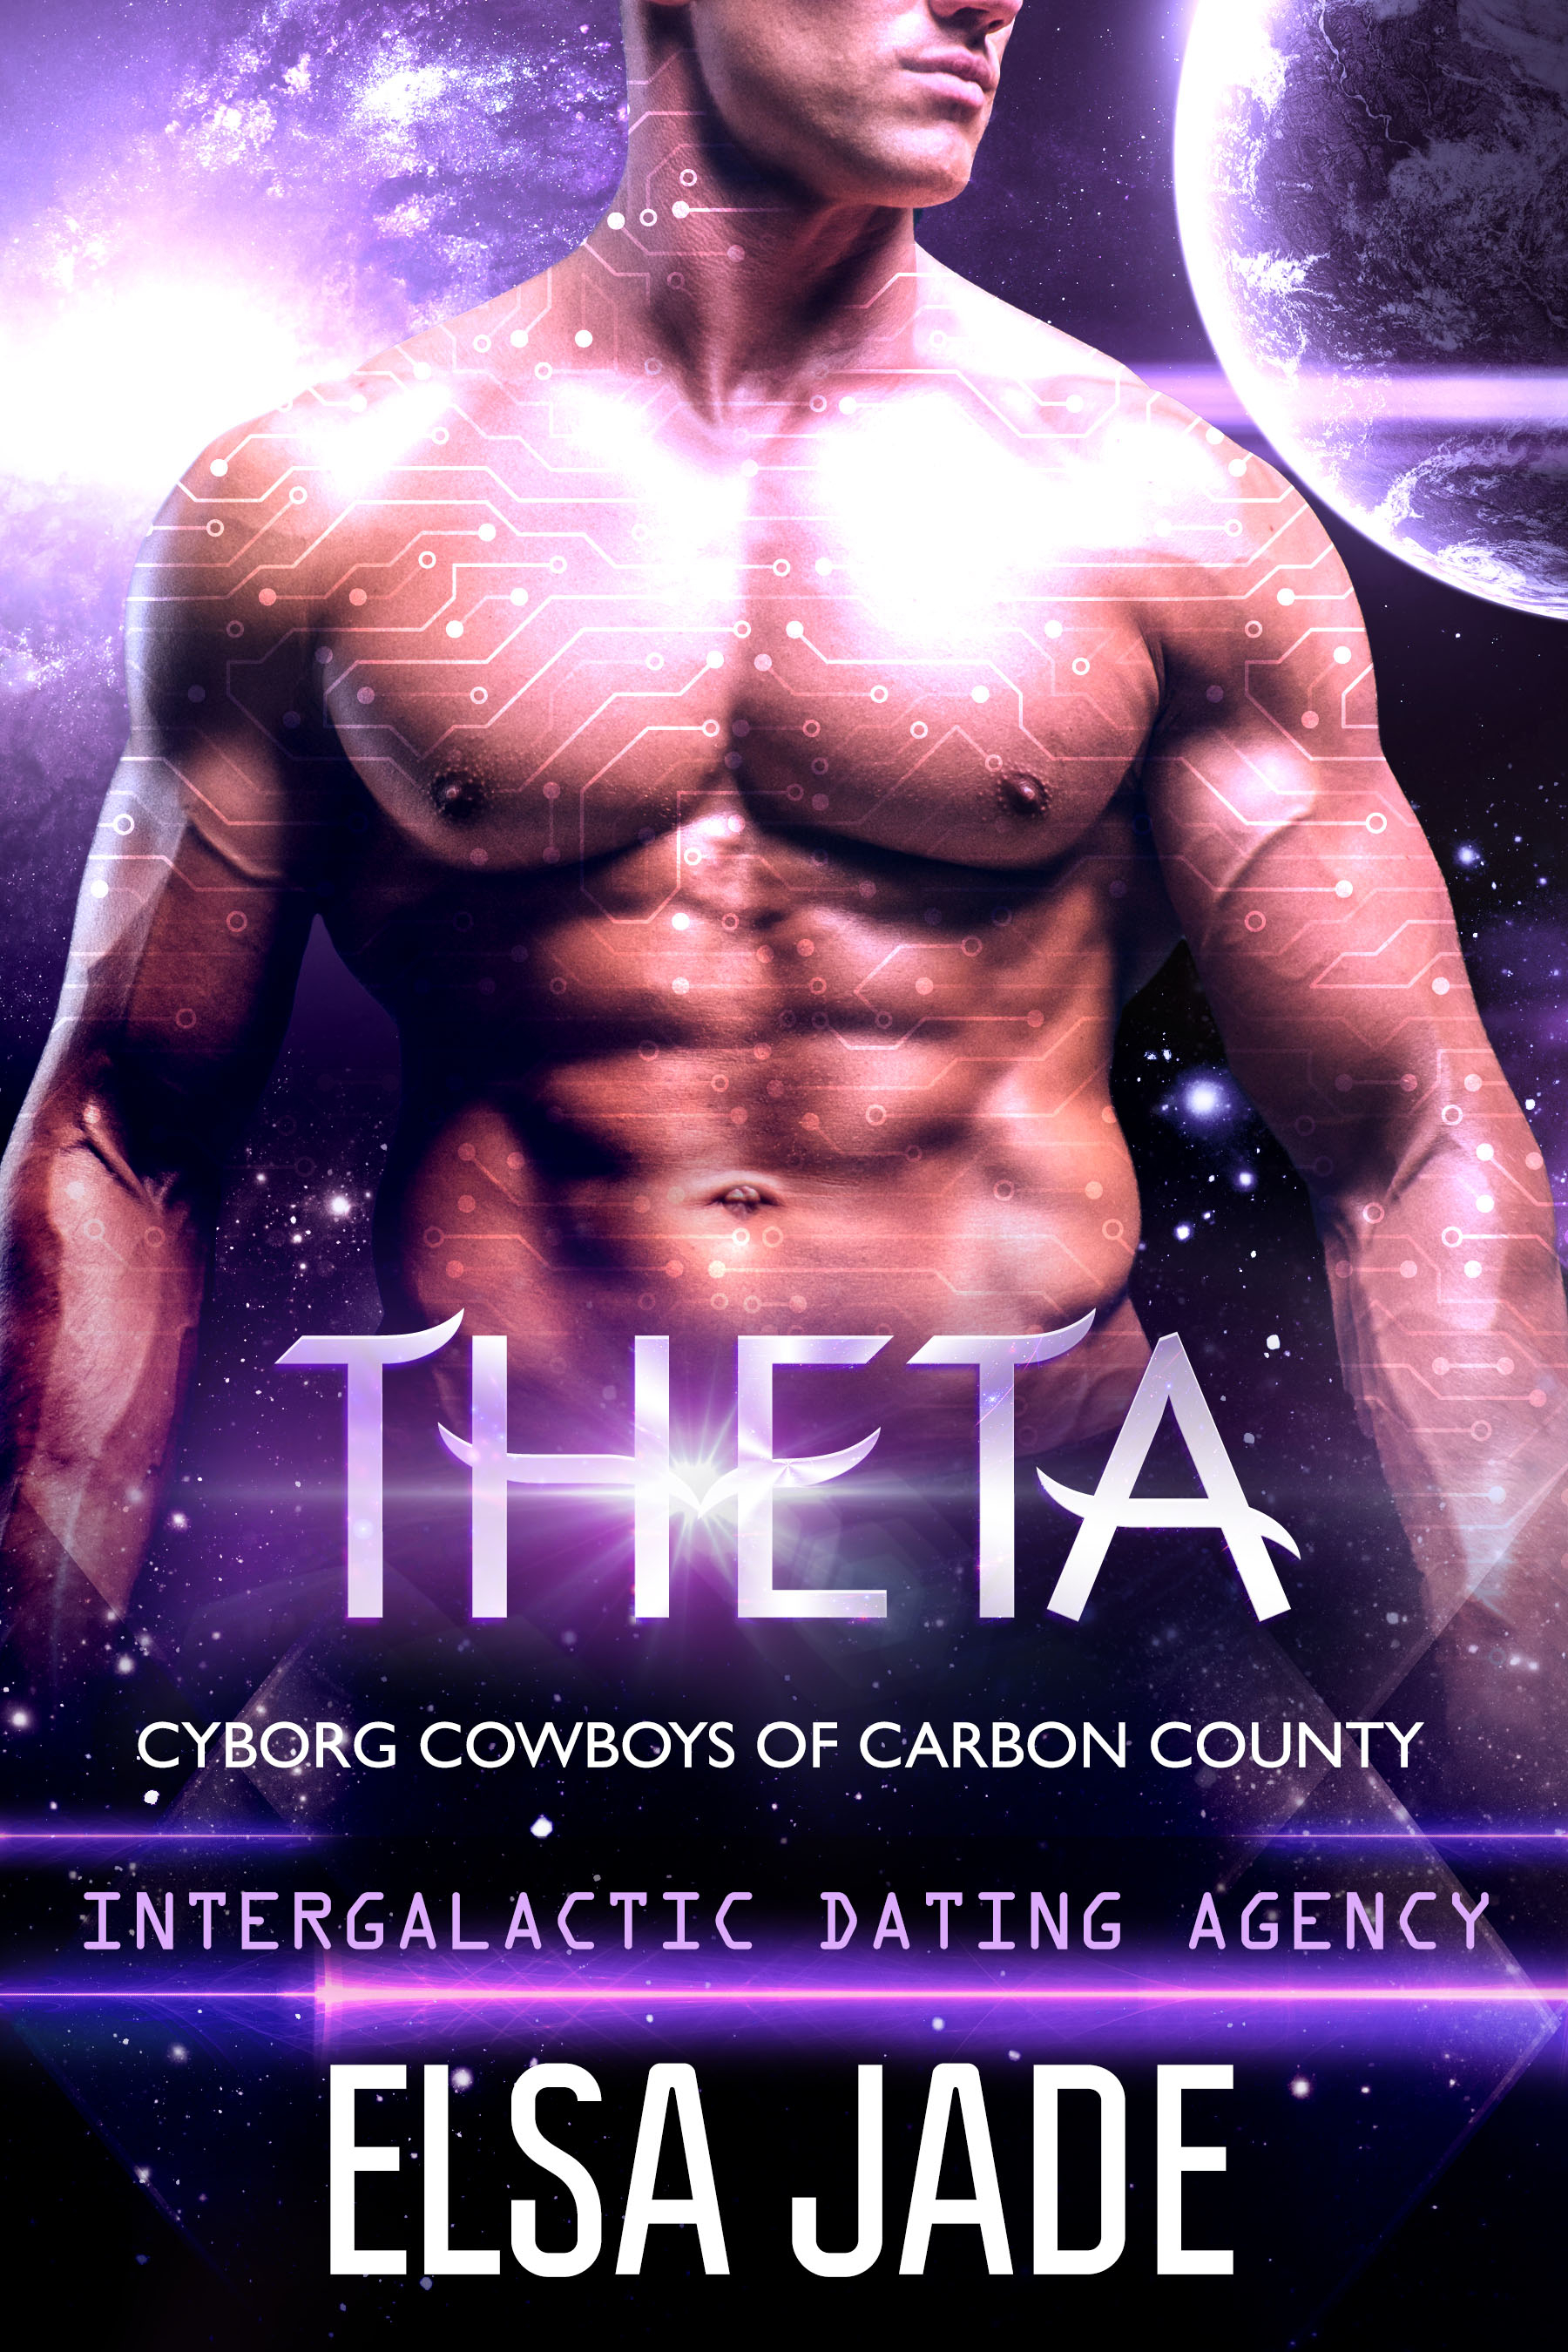 THETA: Cyborg Cowboys of Carbon County by Elsa Jade science fiction romance